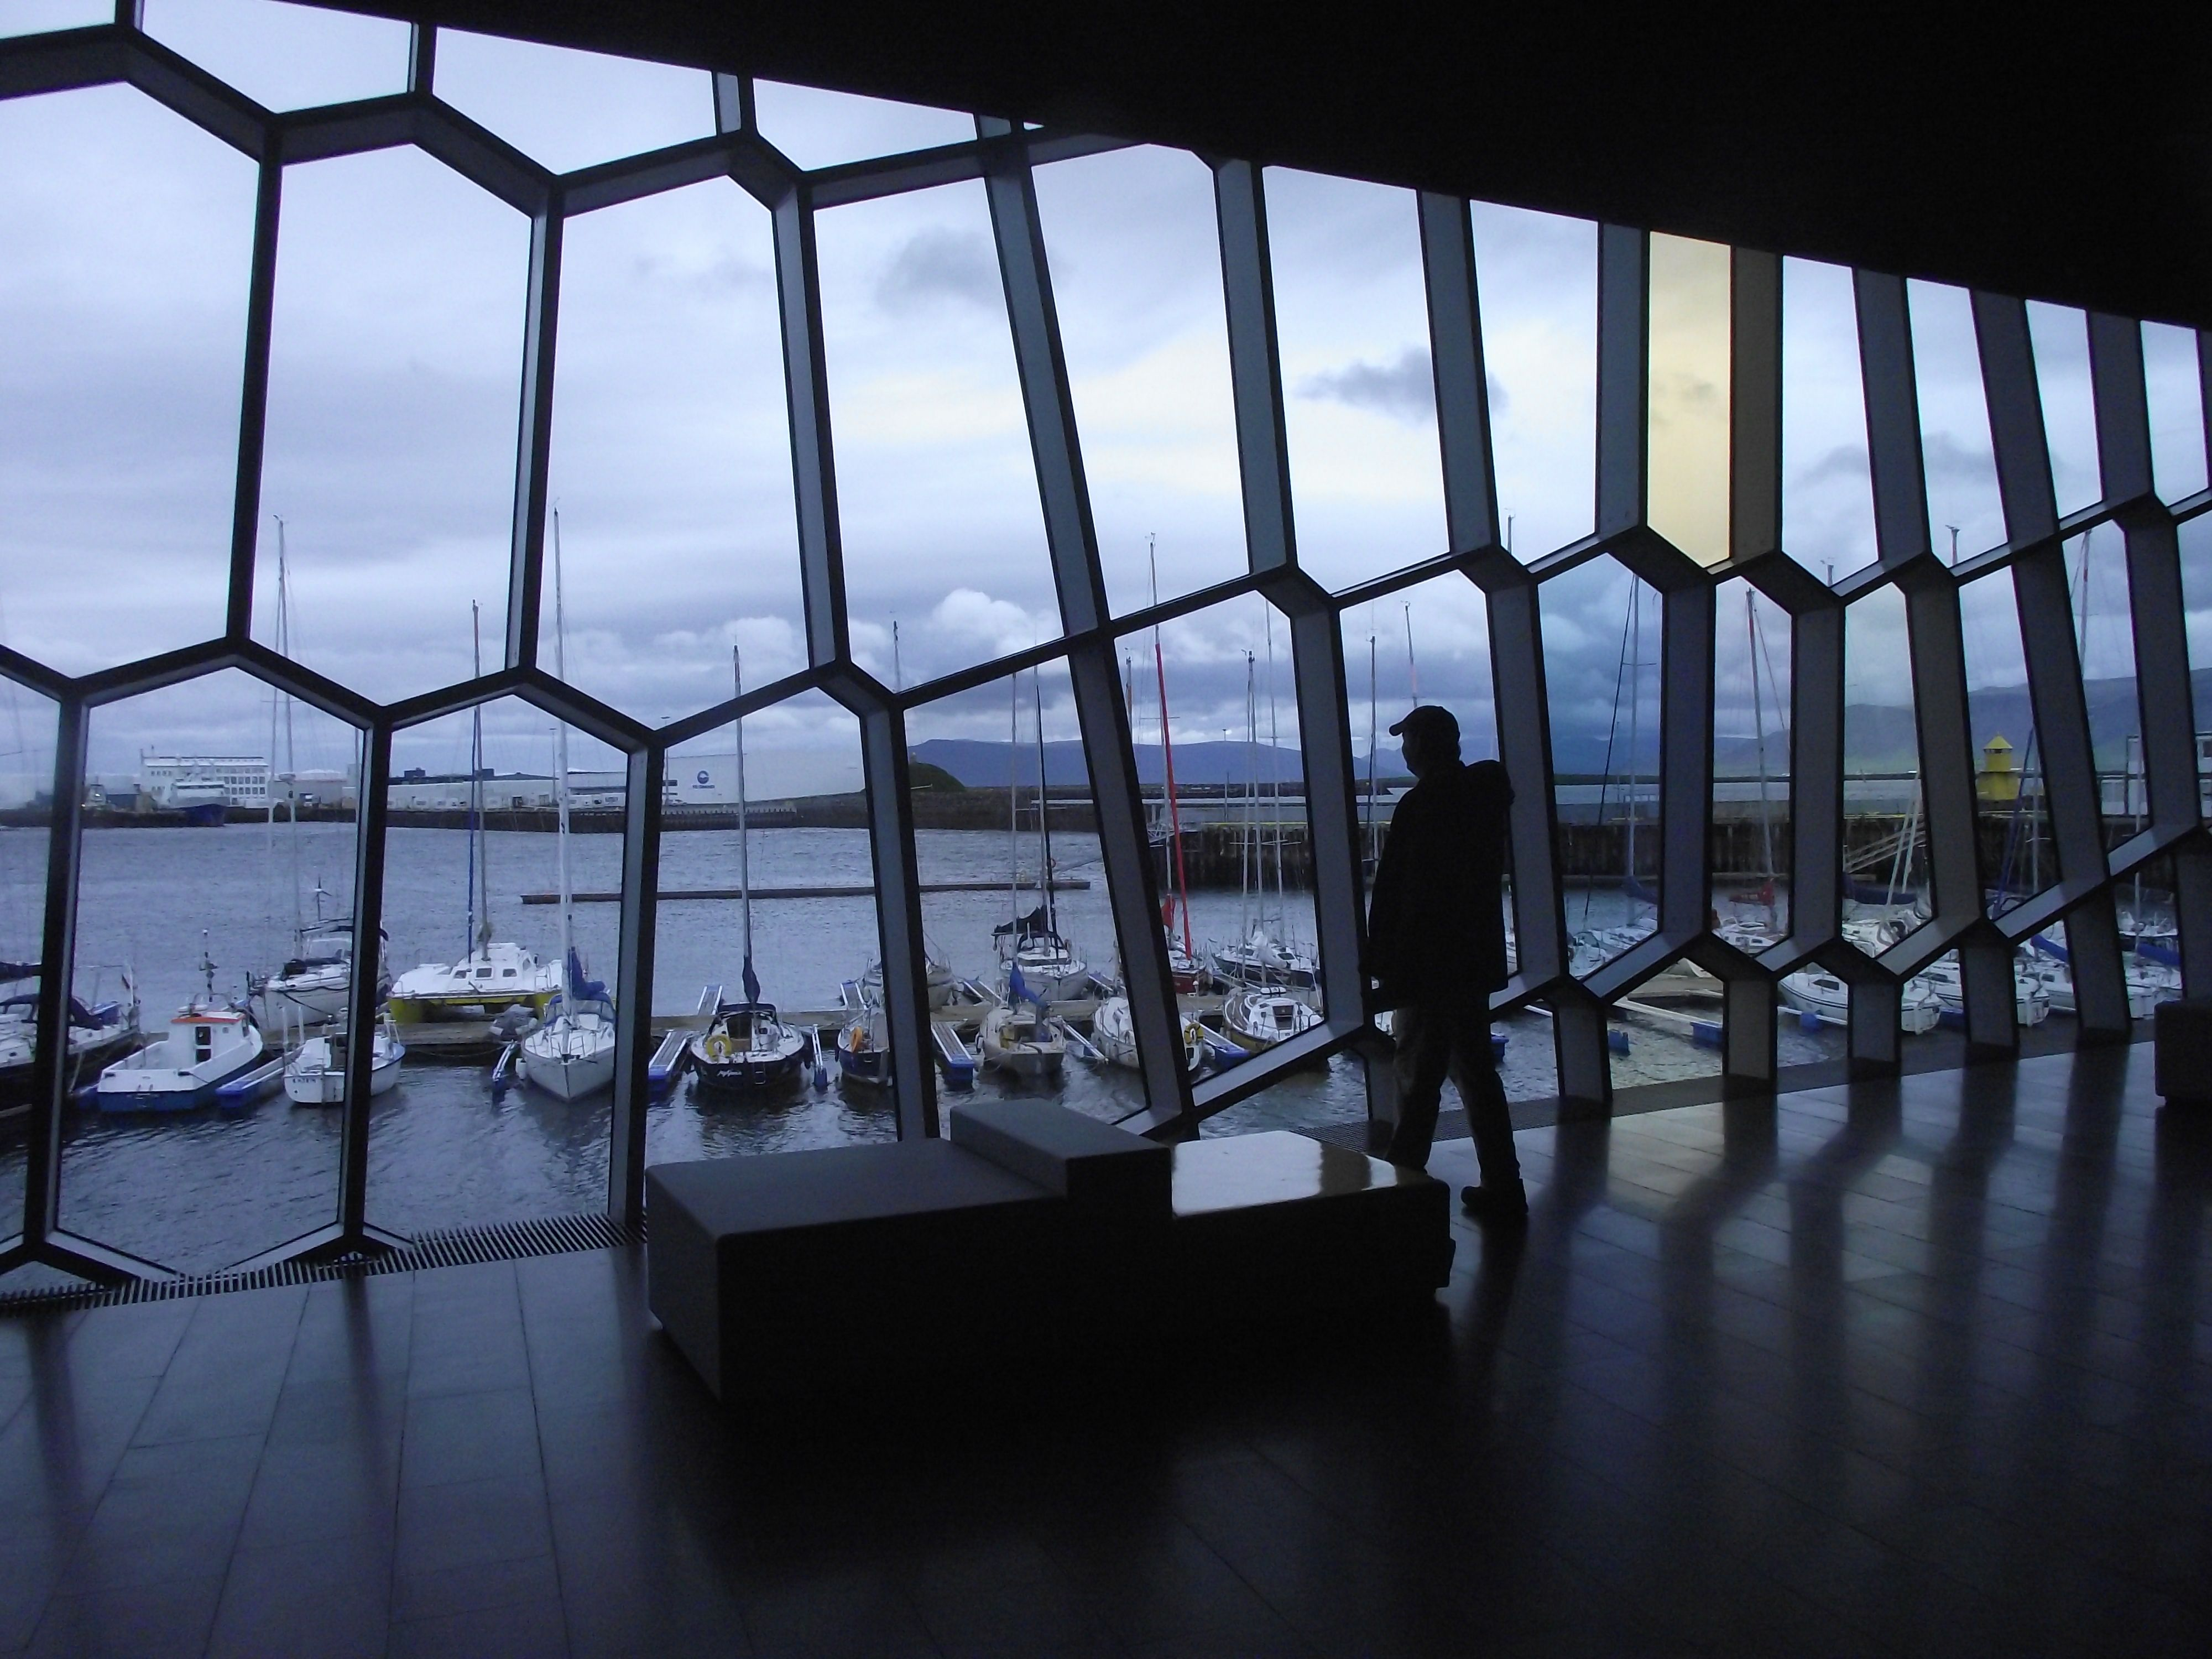 Reykjavik harbour from the Harpa concert hall photo by Maggie Wouterloot